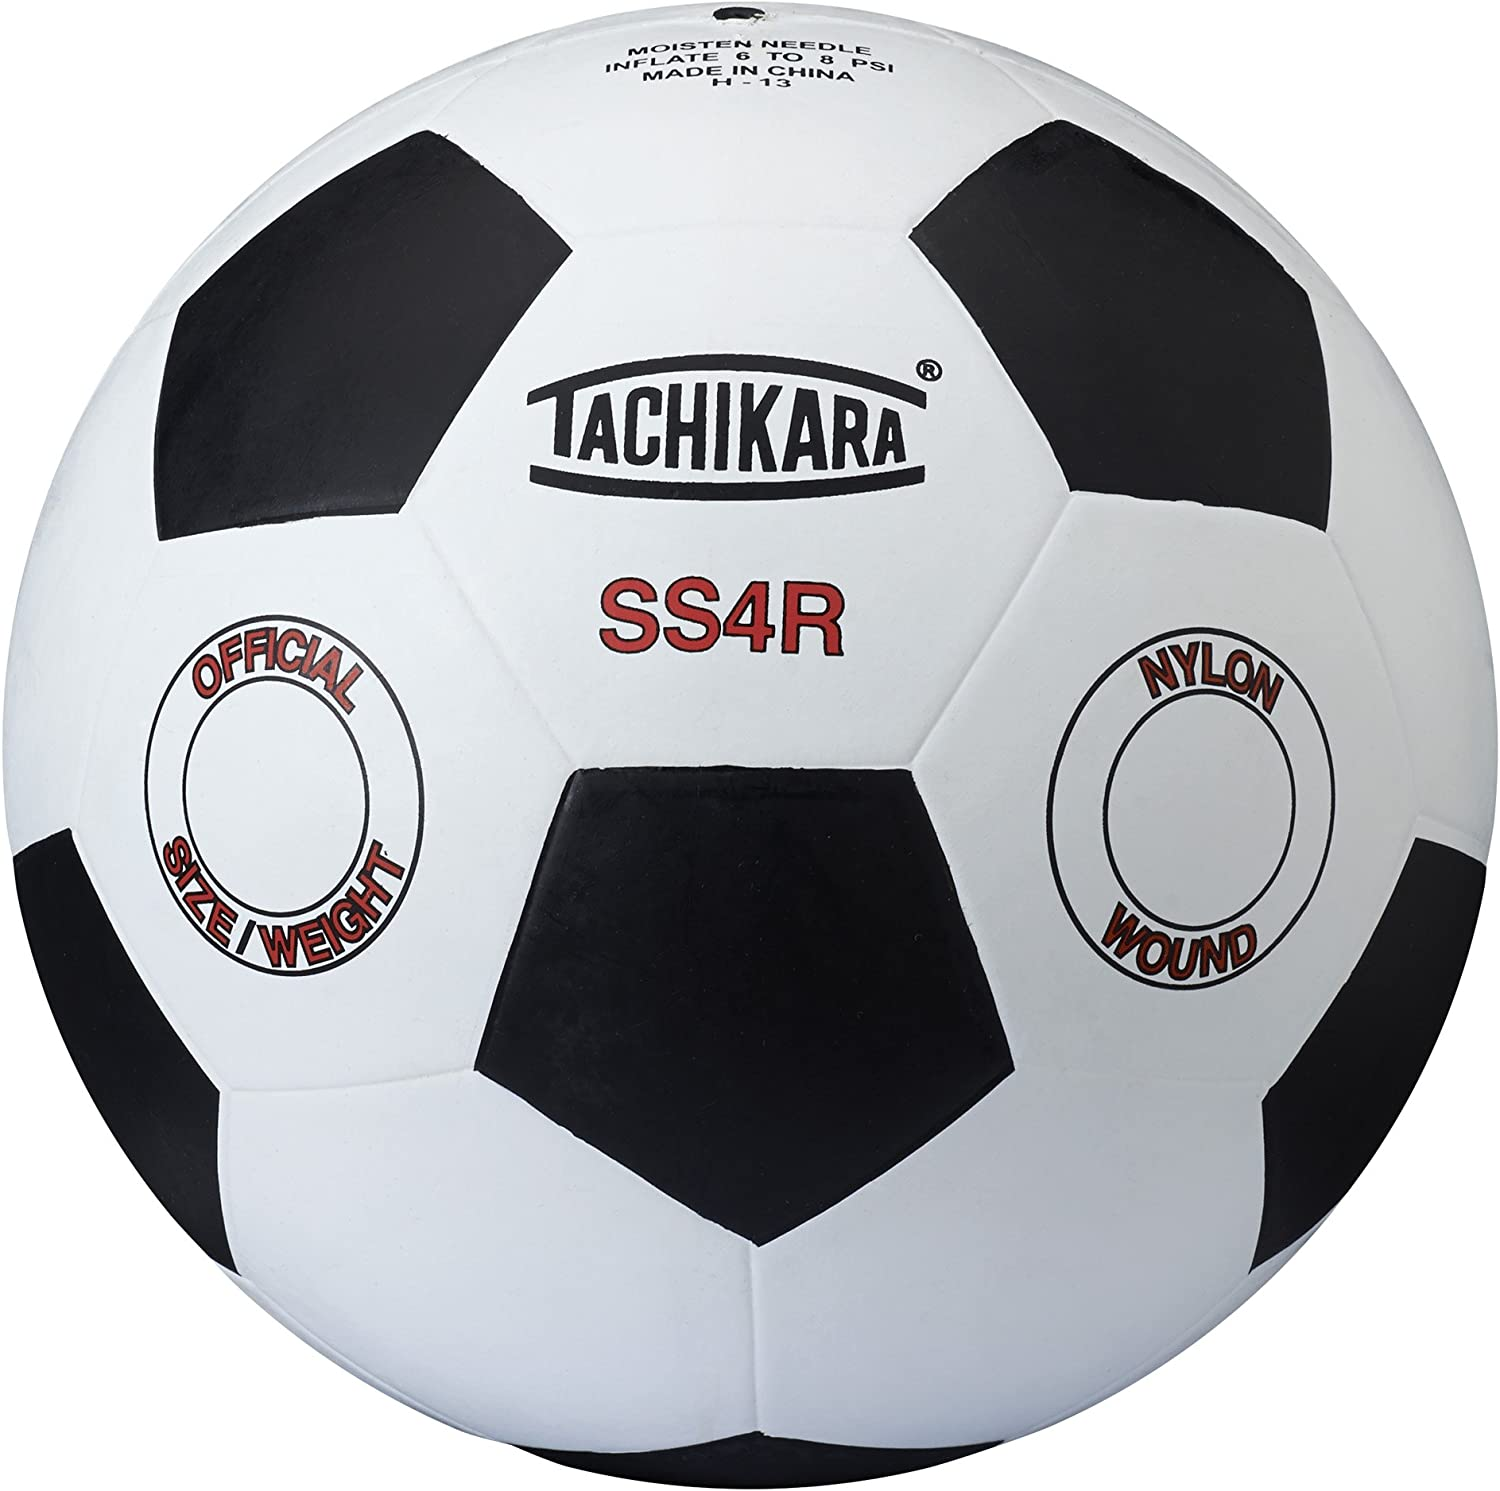 Tachikara Today's only SSR Traditional 5 ☆ very popular Soccer Rubber Ball